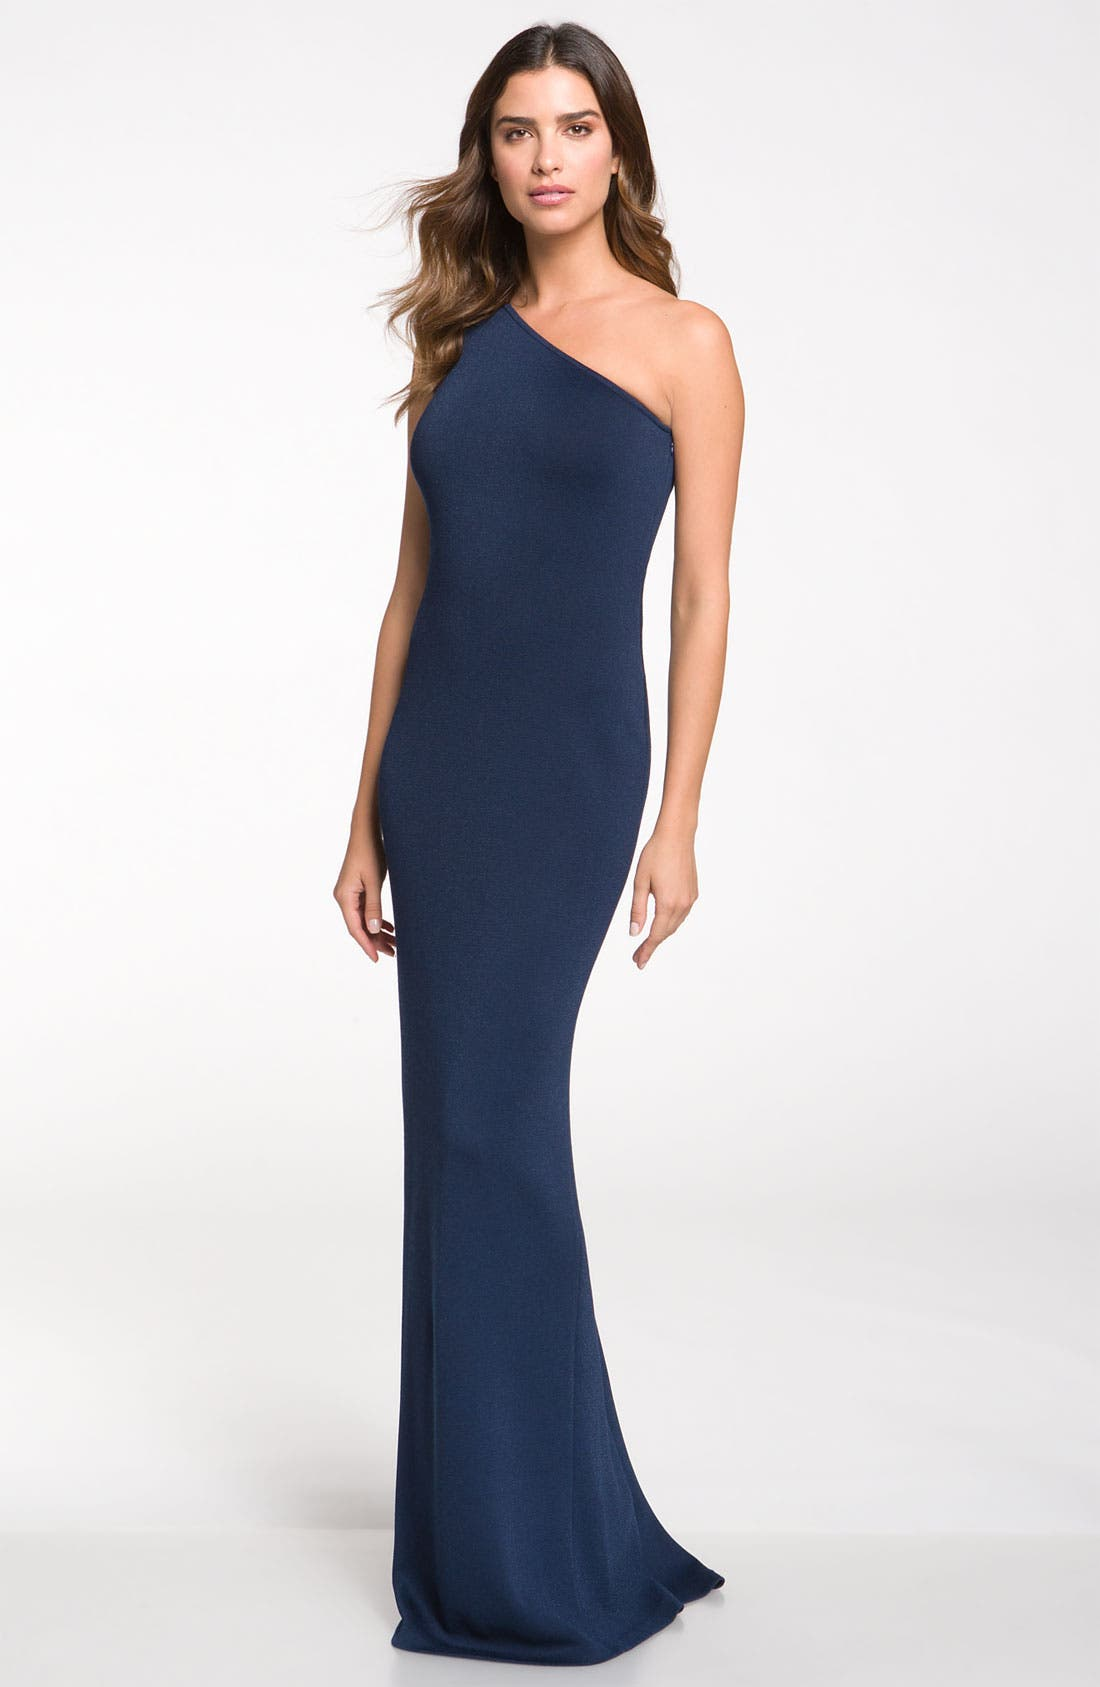 Alternate Image 1 Selected - St. John Collection One Shoulder Shimmer Milano Knit Gown